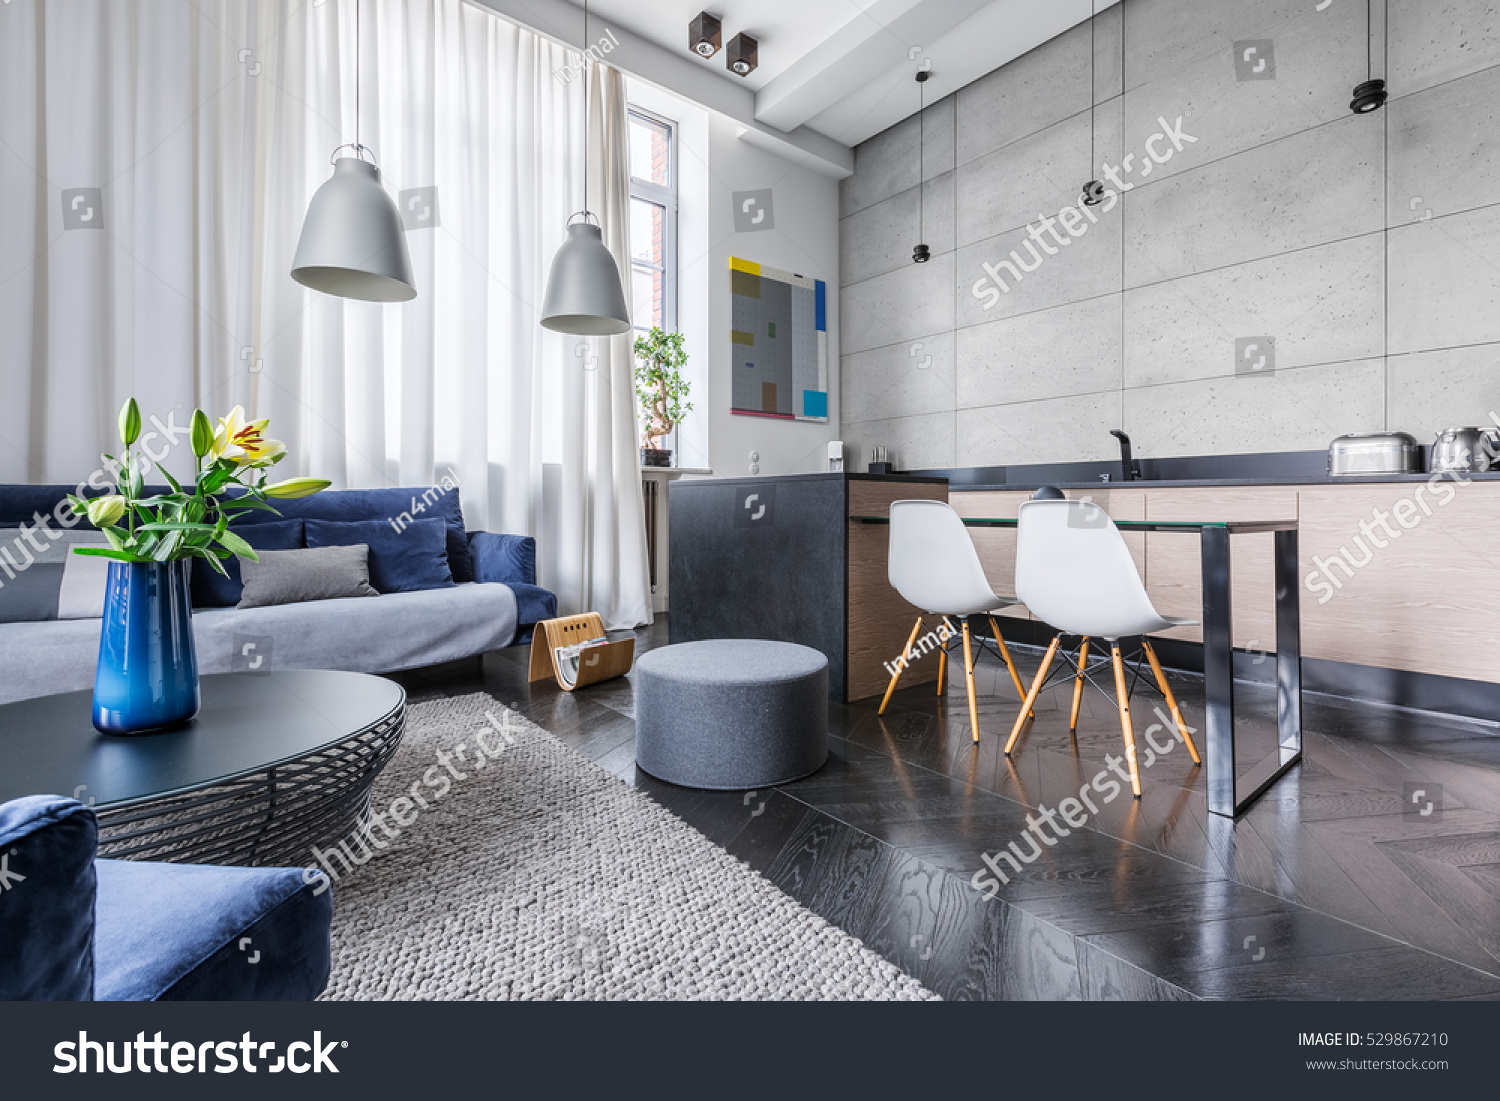 Modern Apartment Kitchen Living Room Combined Stock Photo 529867210 Shutterstock